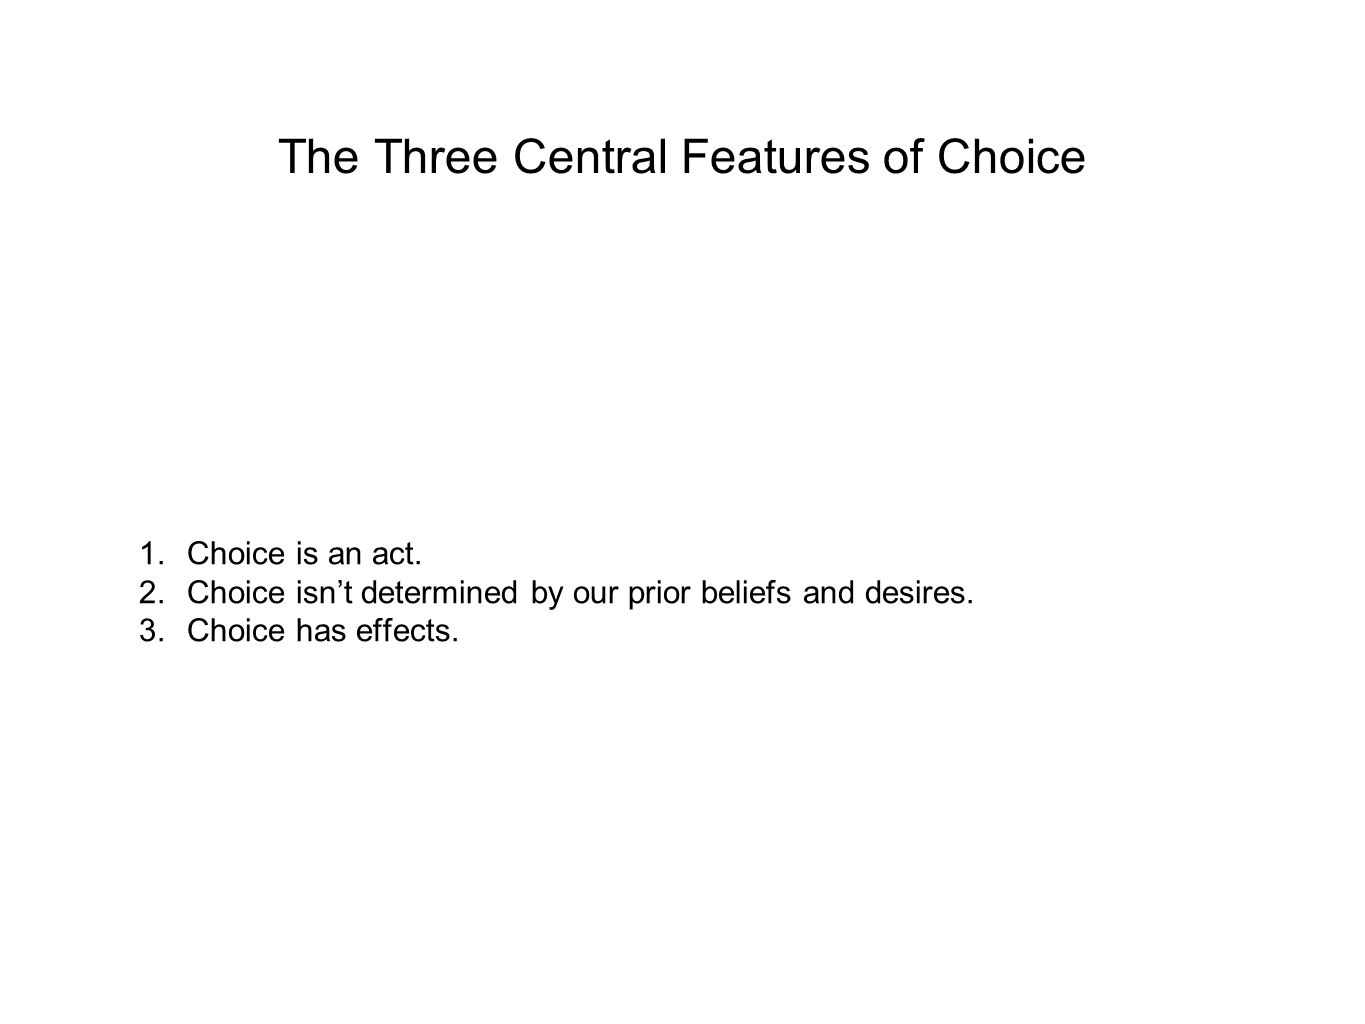 The Three Central Features of Choice